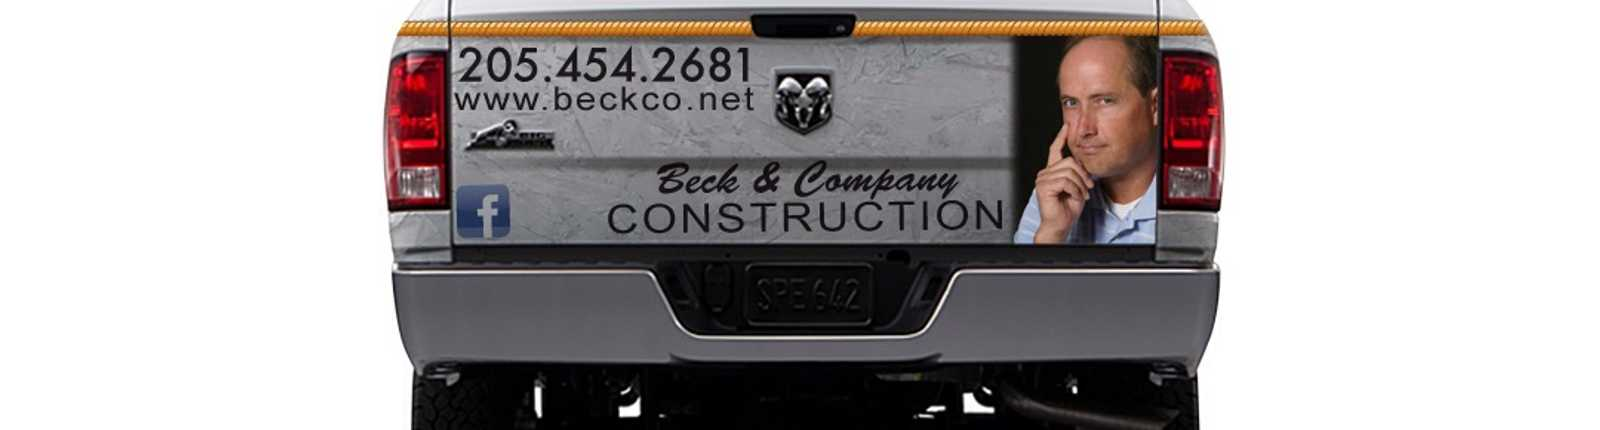 Beck & Company Construction header image